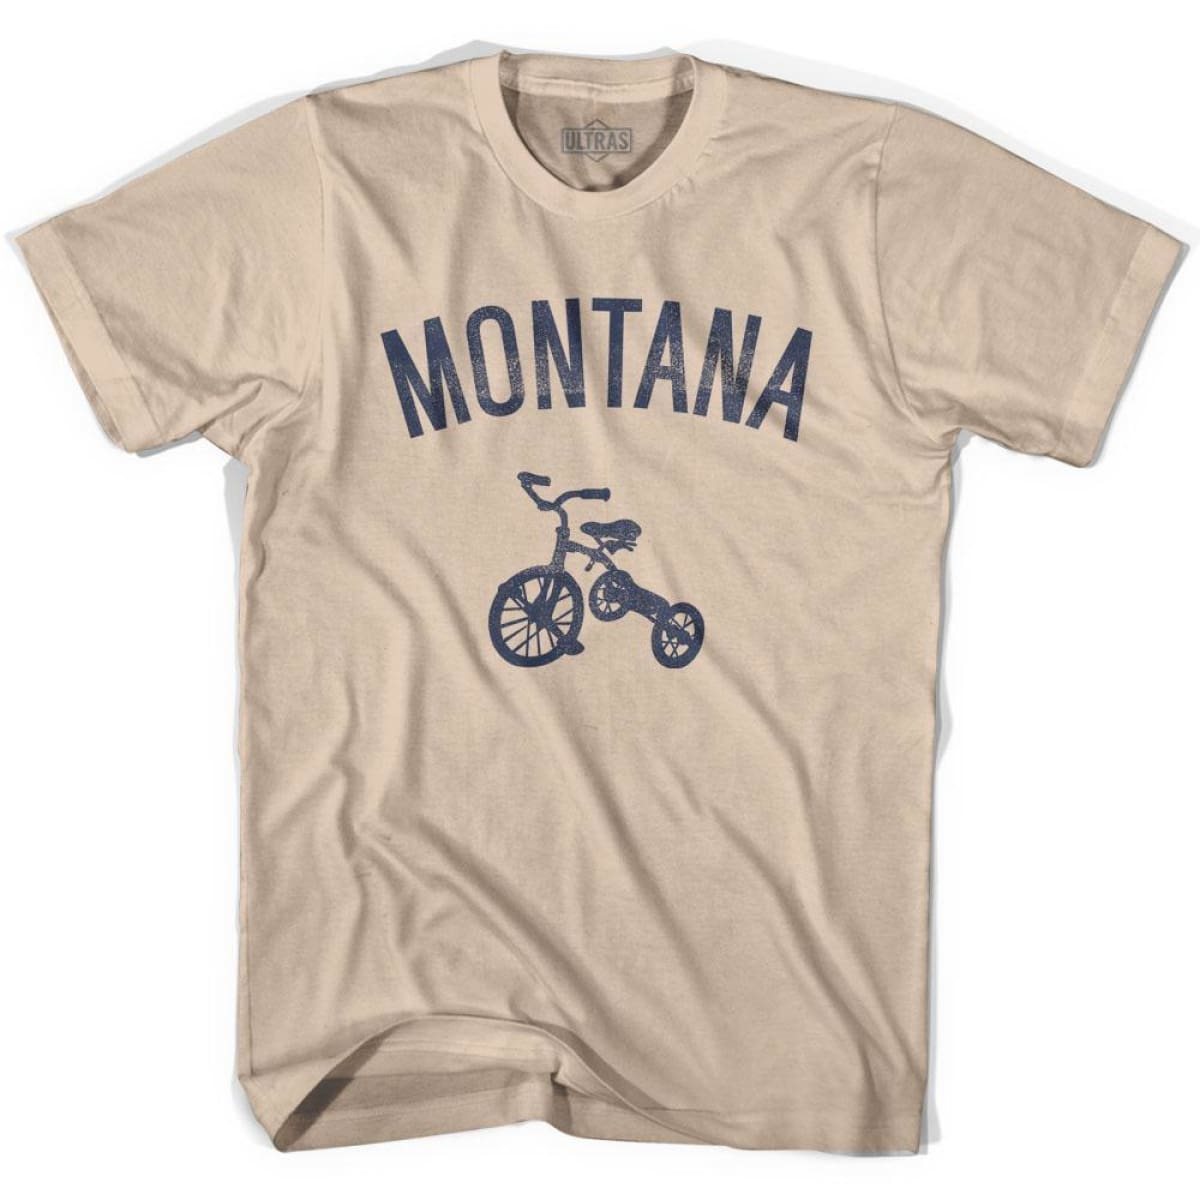 Montana State Tricycle Adult Cotton T-shirt - Creme / Adult Small - Tricycle State